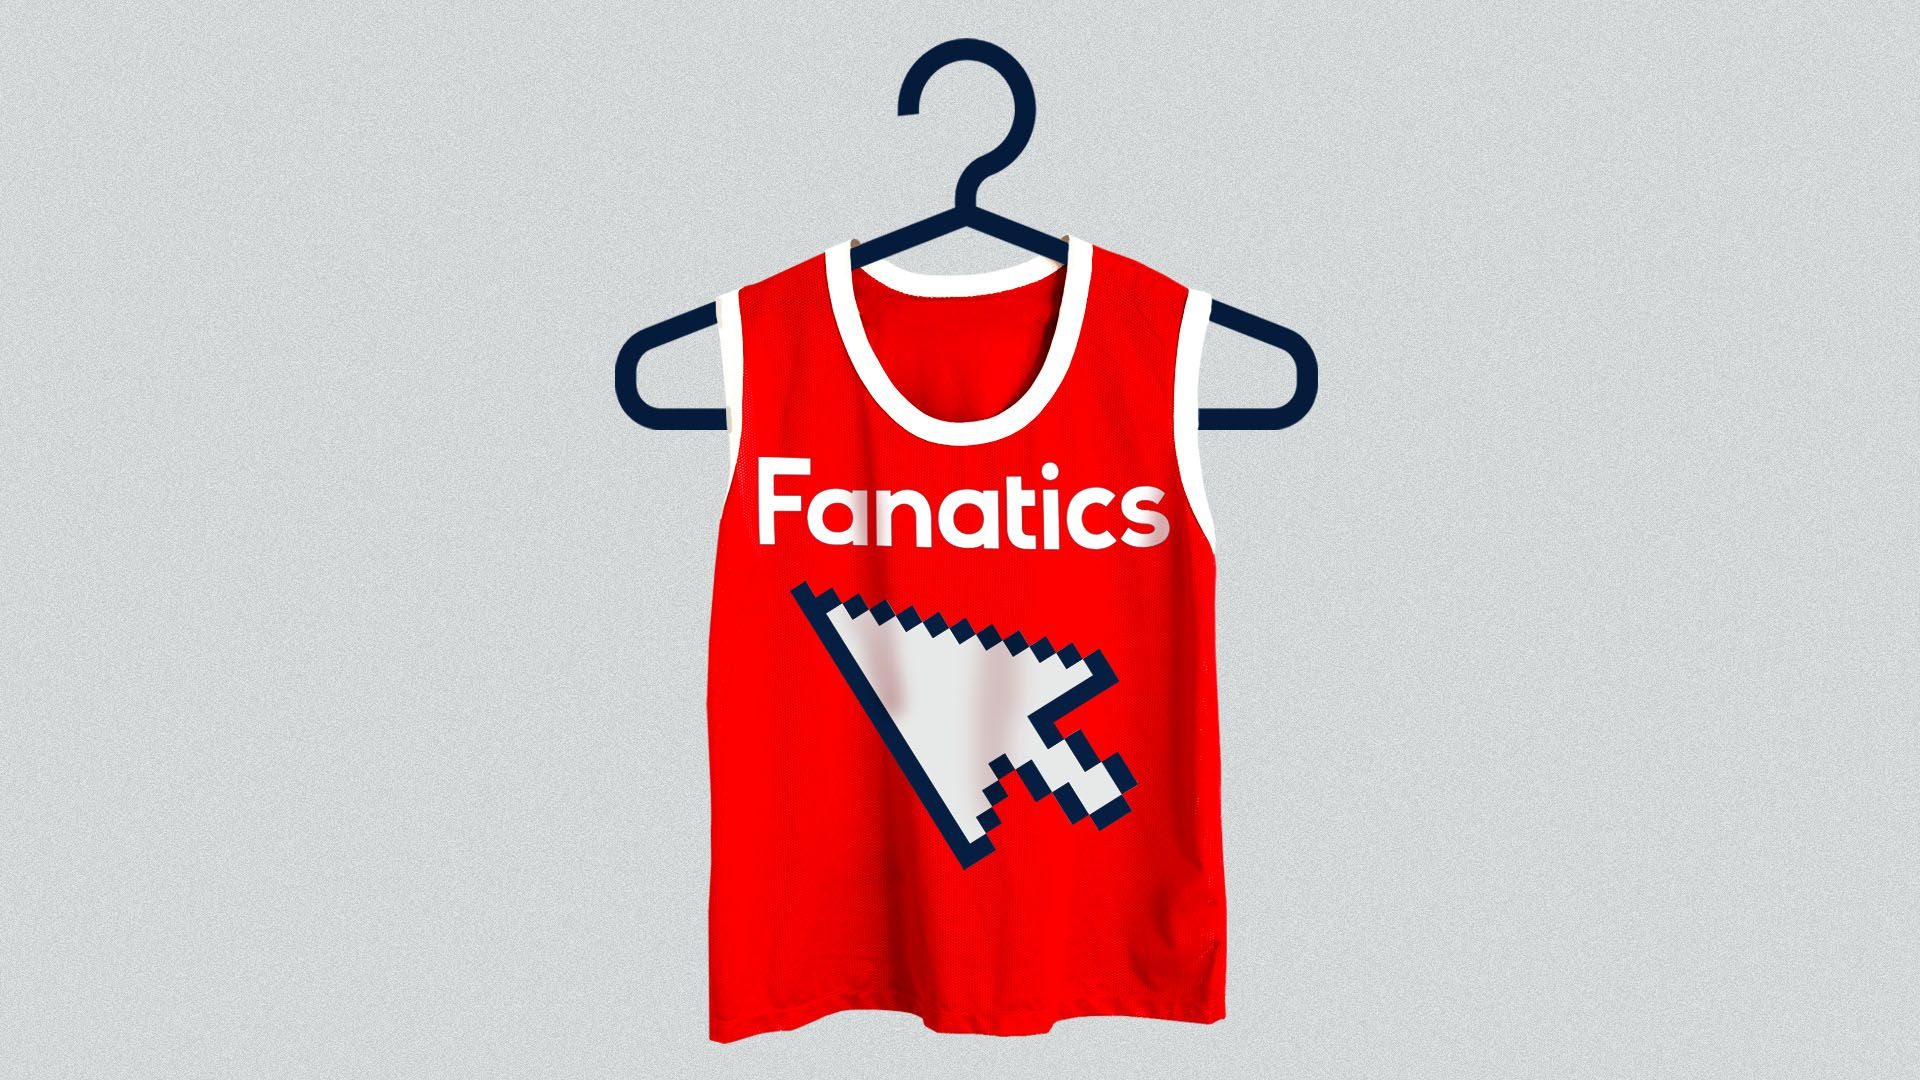 The Amazon of sports apparel: Fanatics is changing the game